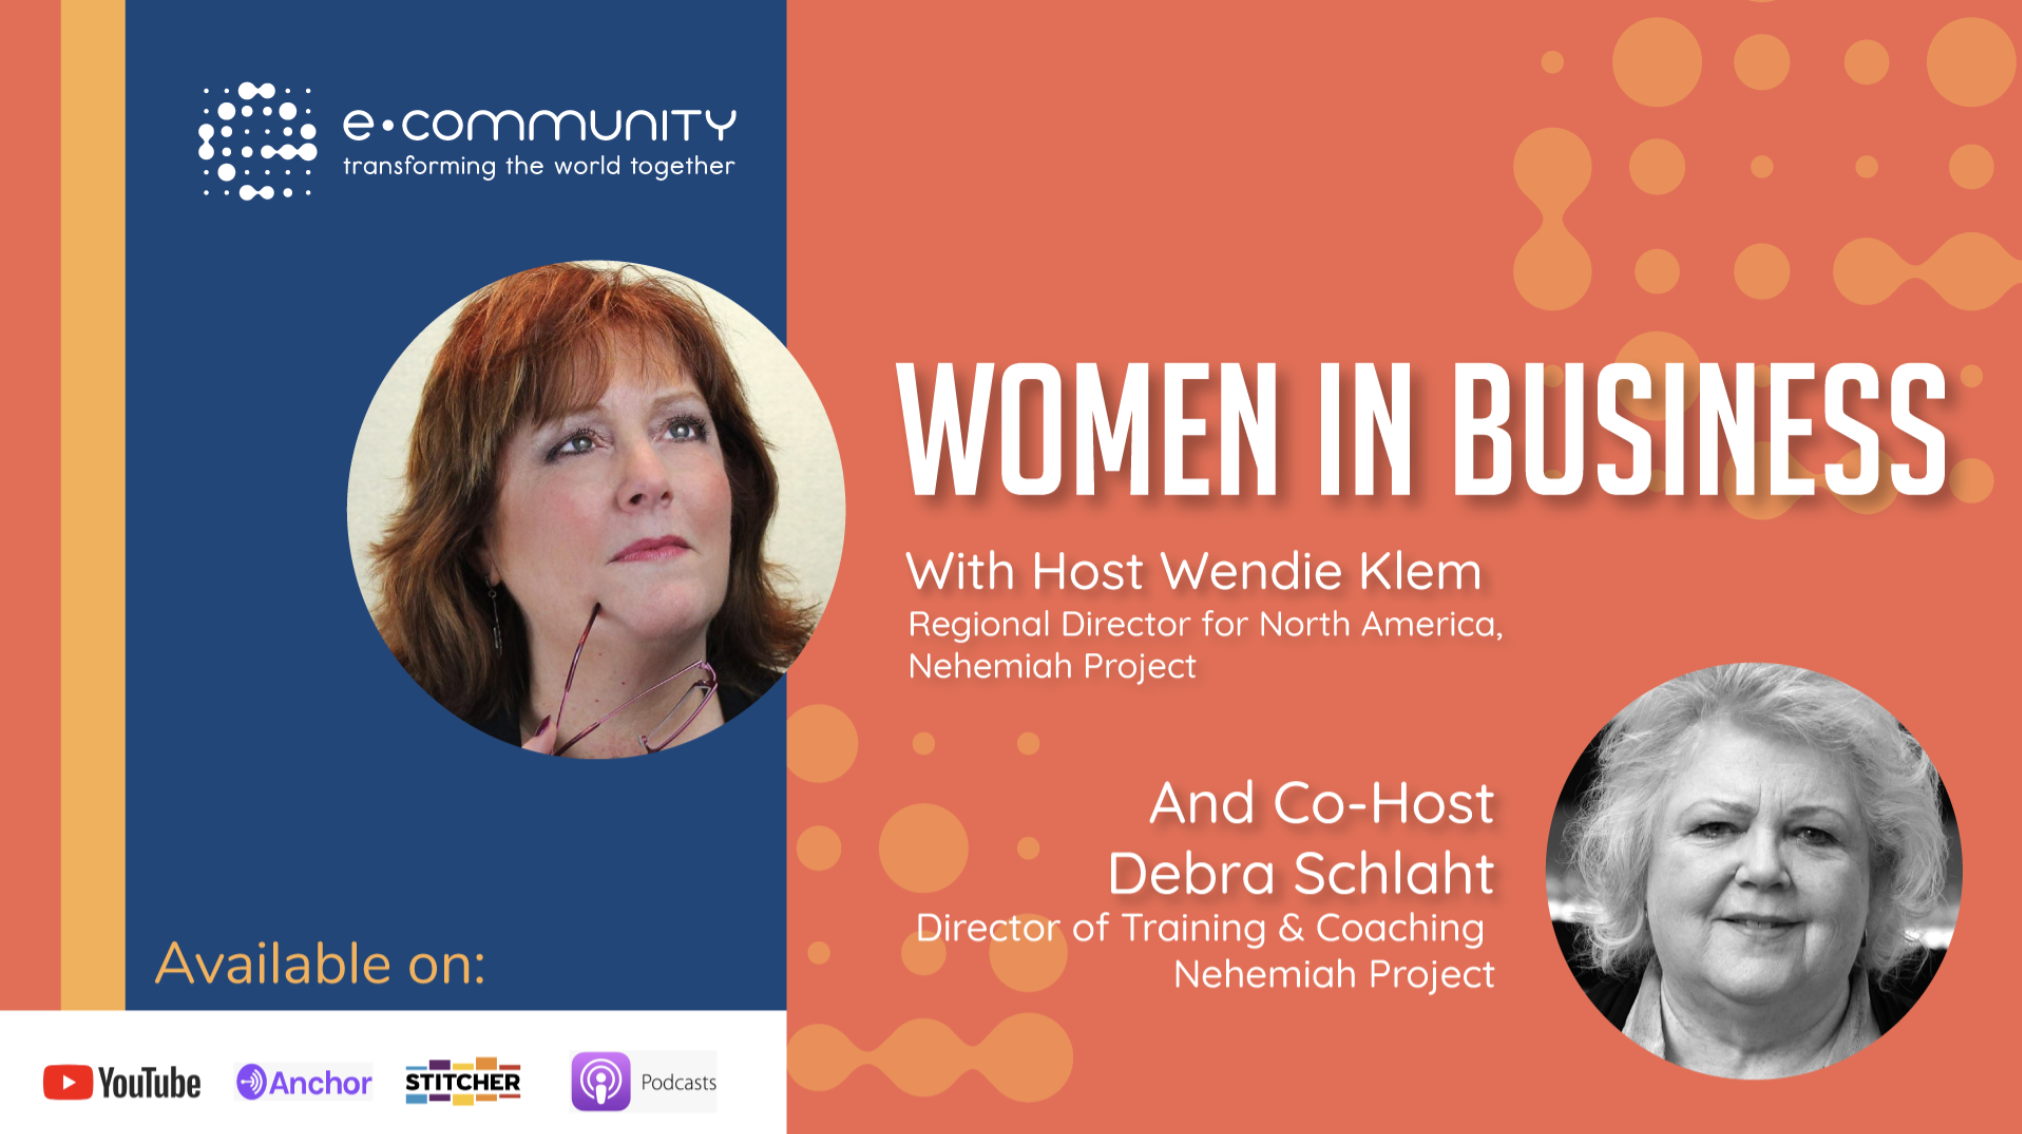 Women in Business E-Community Podcast with Debra Schlaht and Wendie Klem